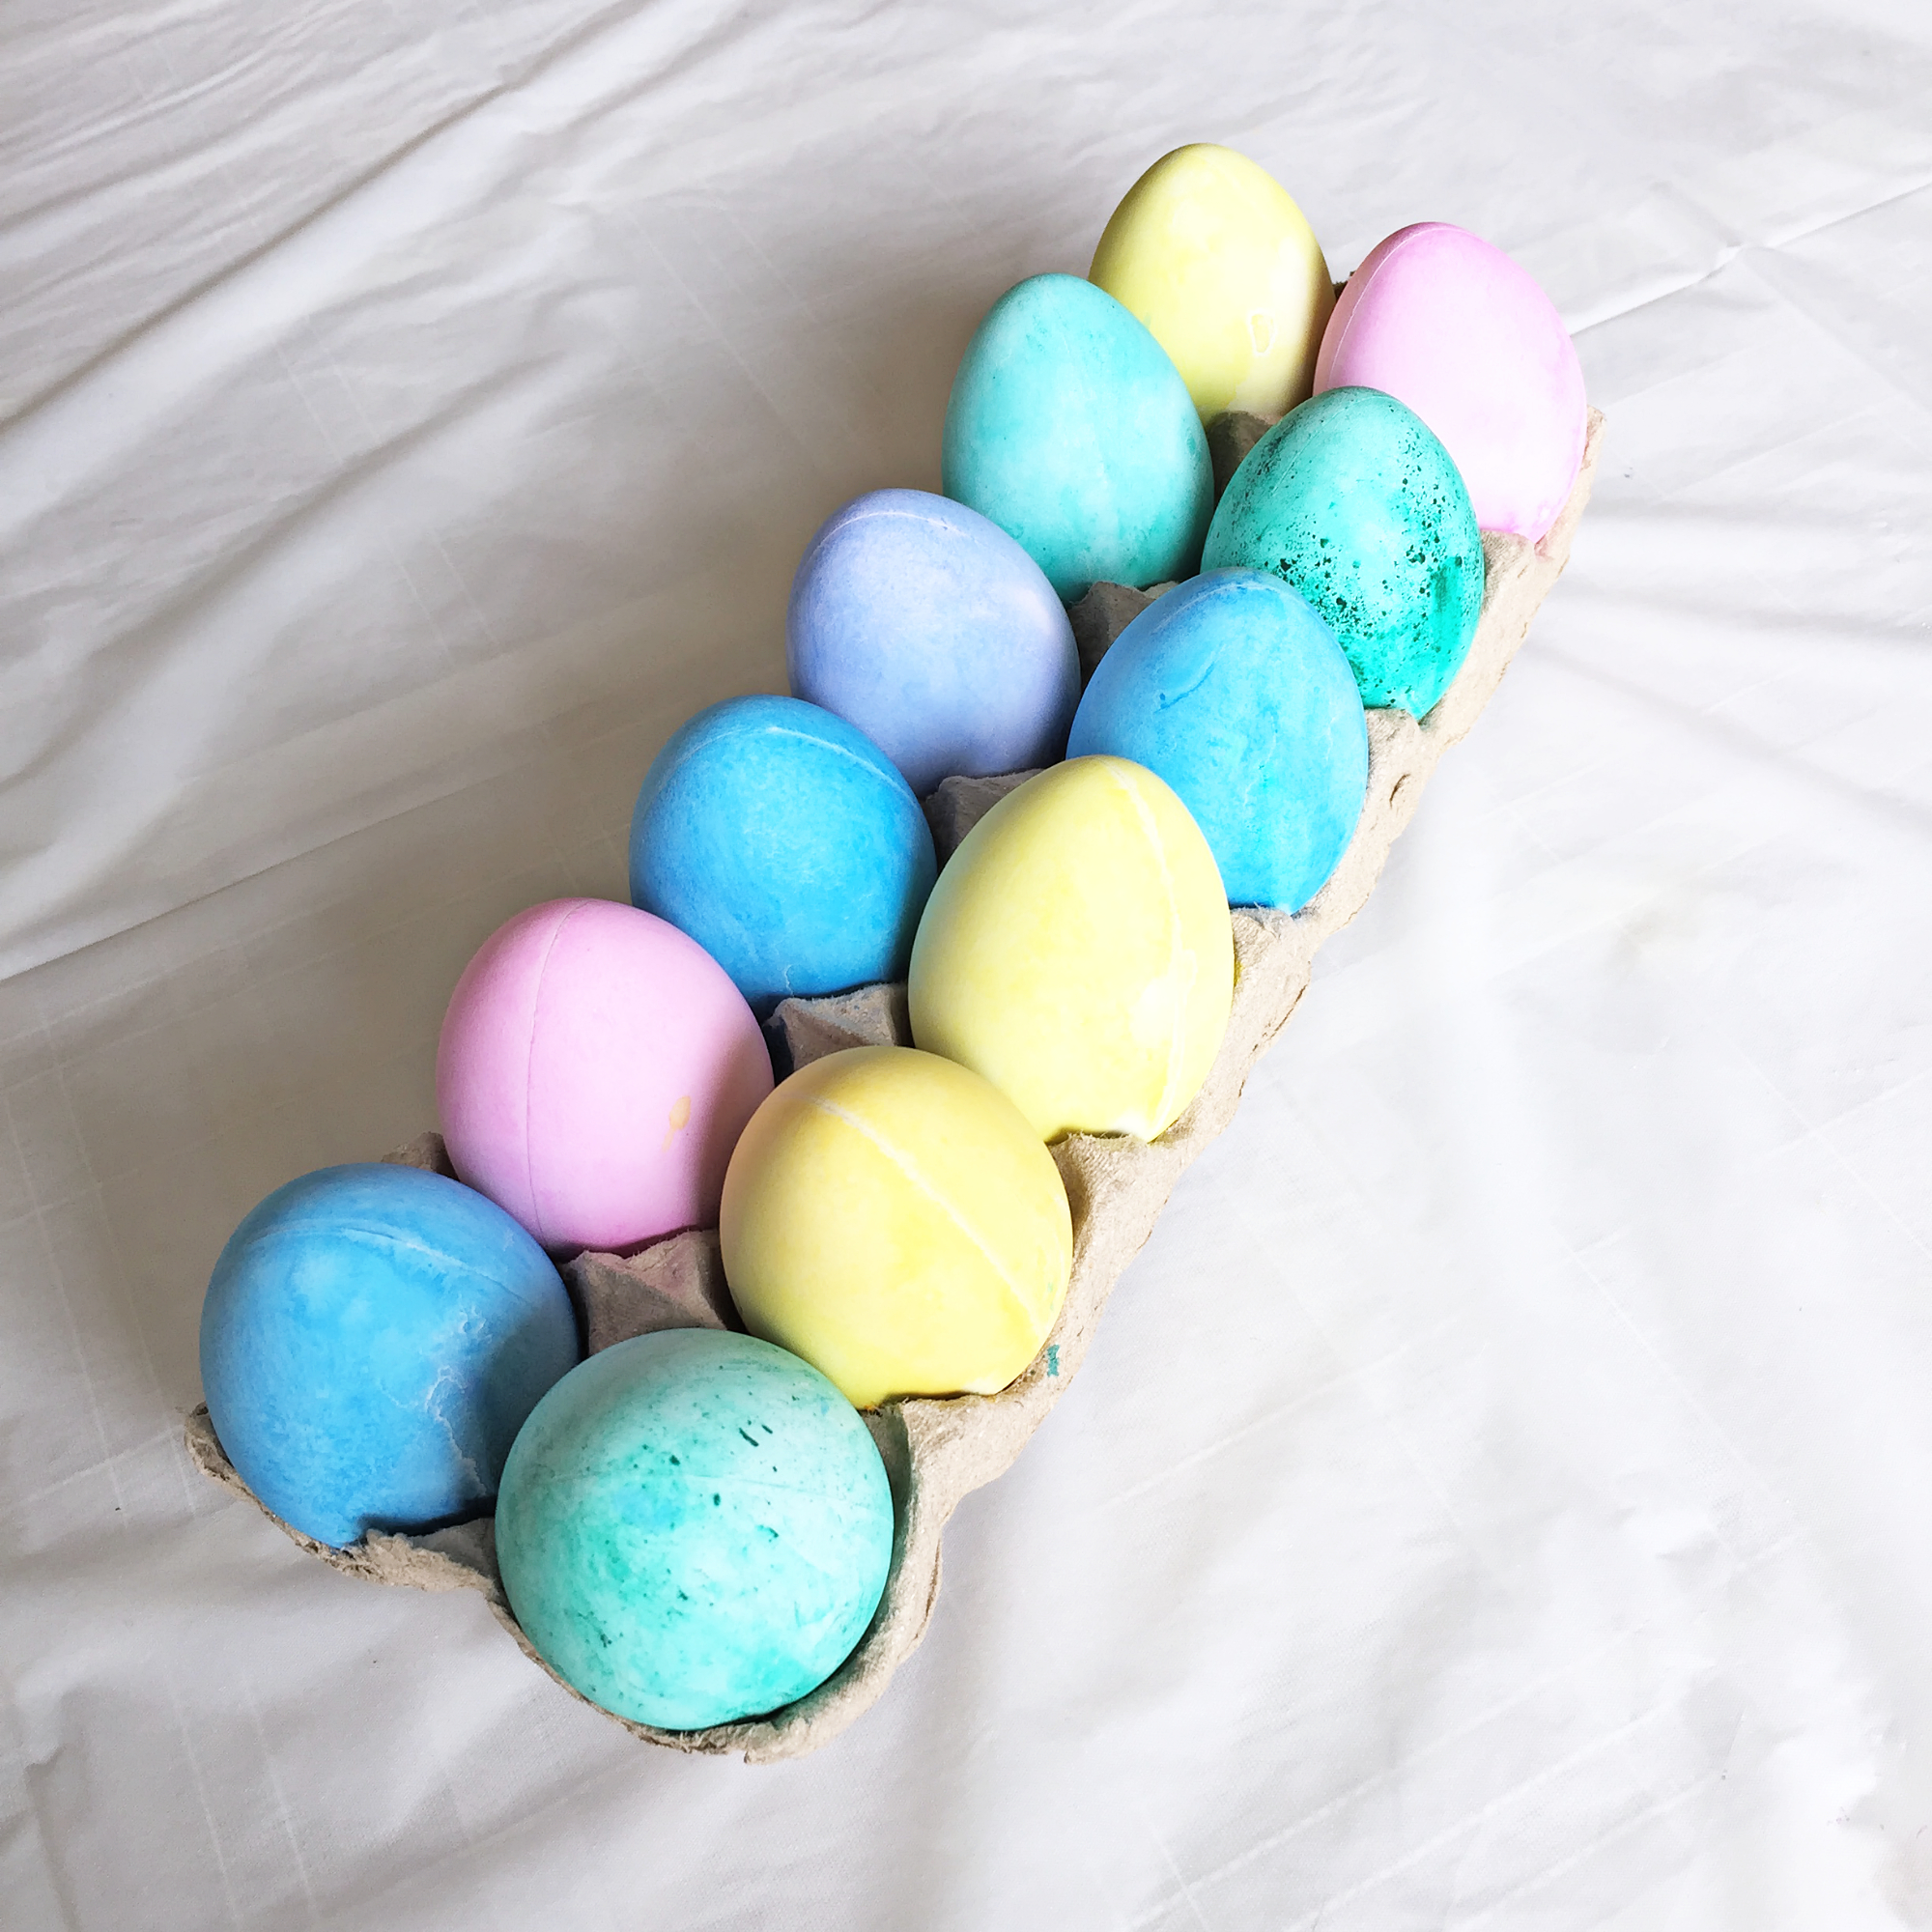 Vegan Easter Eggs Dyeing